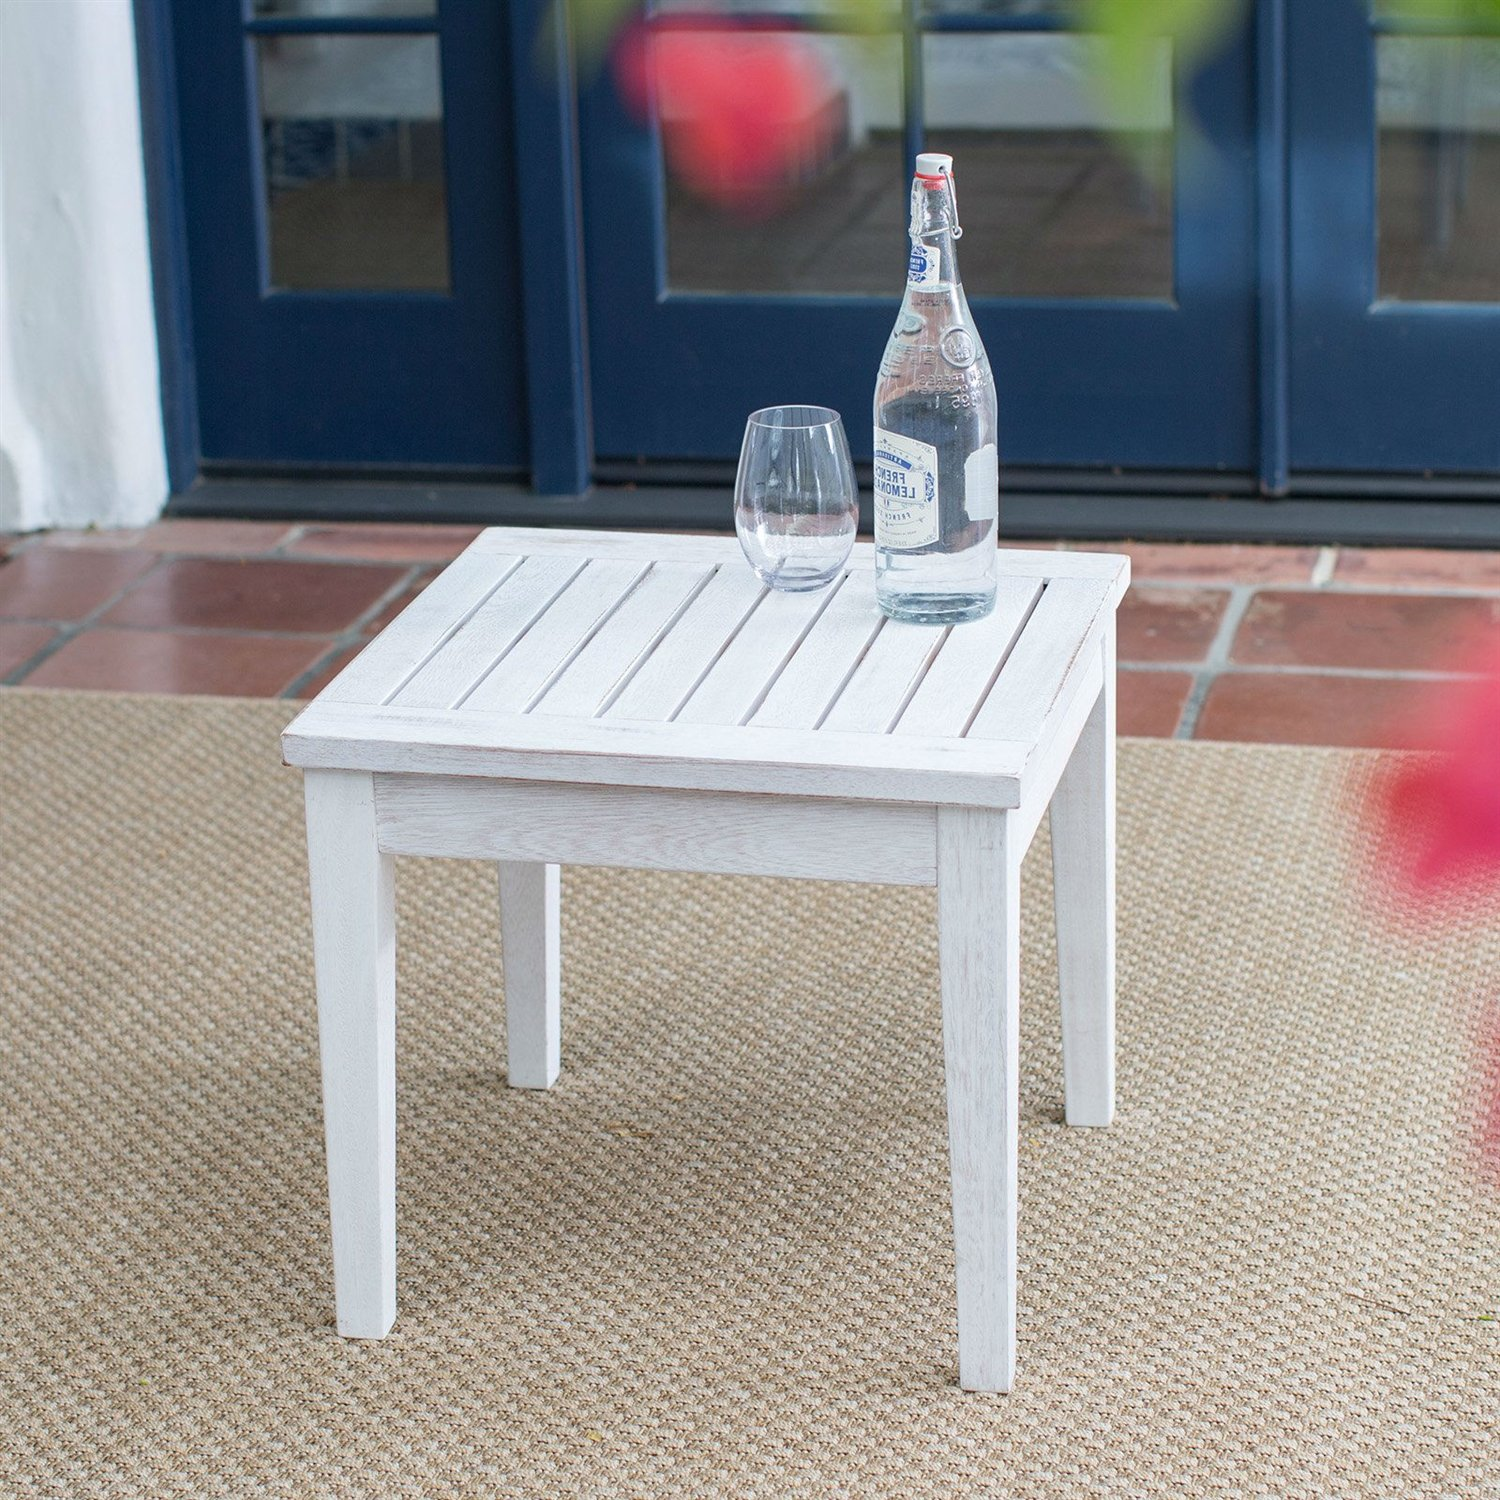 outdoor garden deck patio side table white wood finish anja attic wicker accent placemats and napkins cooking round glass dining chairs nautical lights the sea gray nesting tables